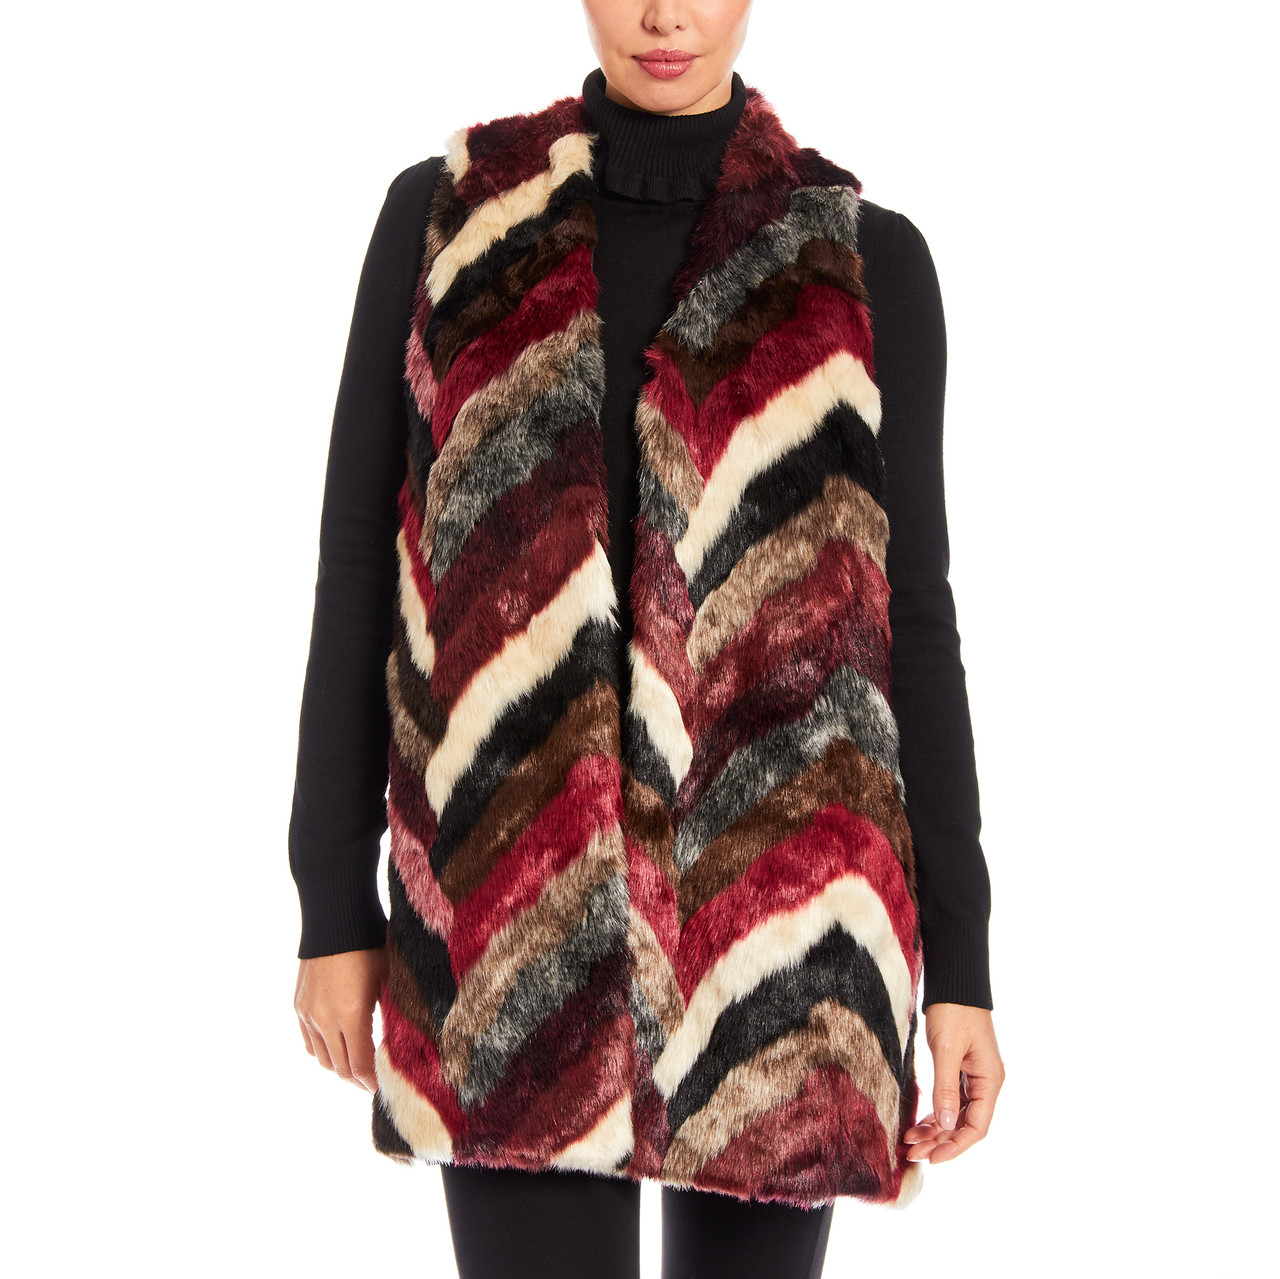 Faux Fur Vest With Knit Back in Wine Combo